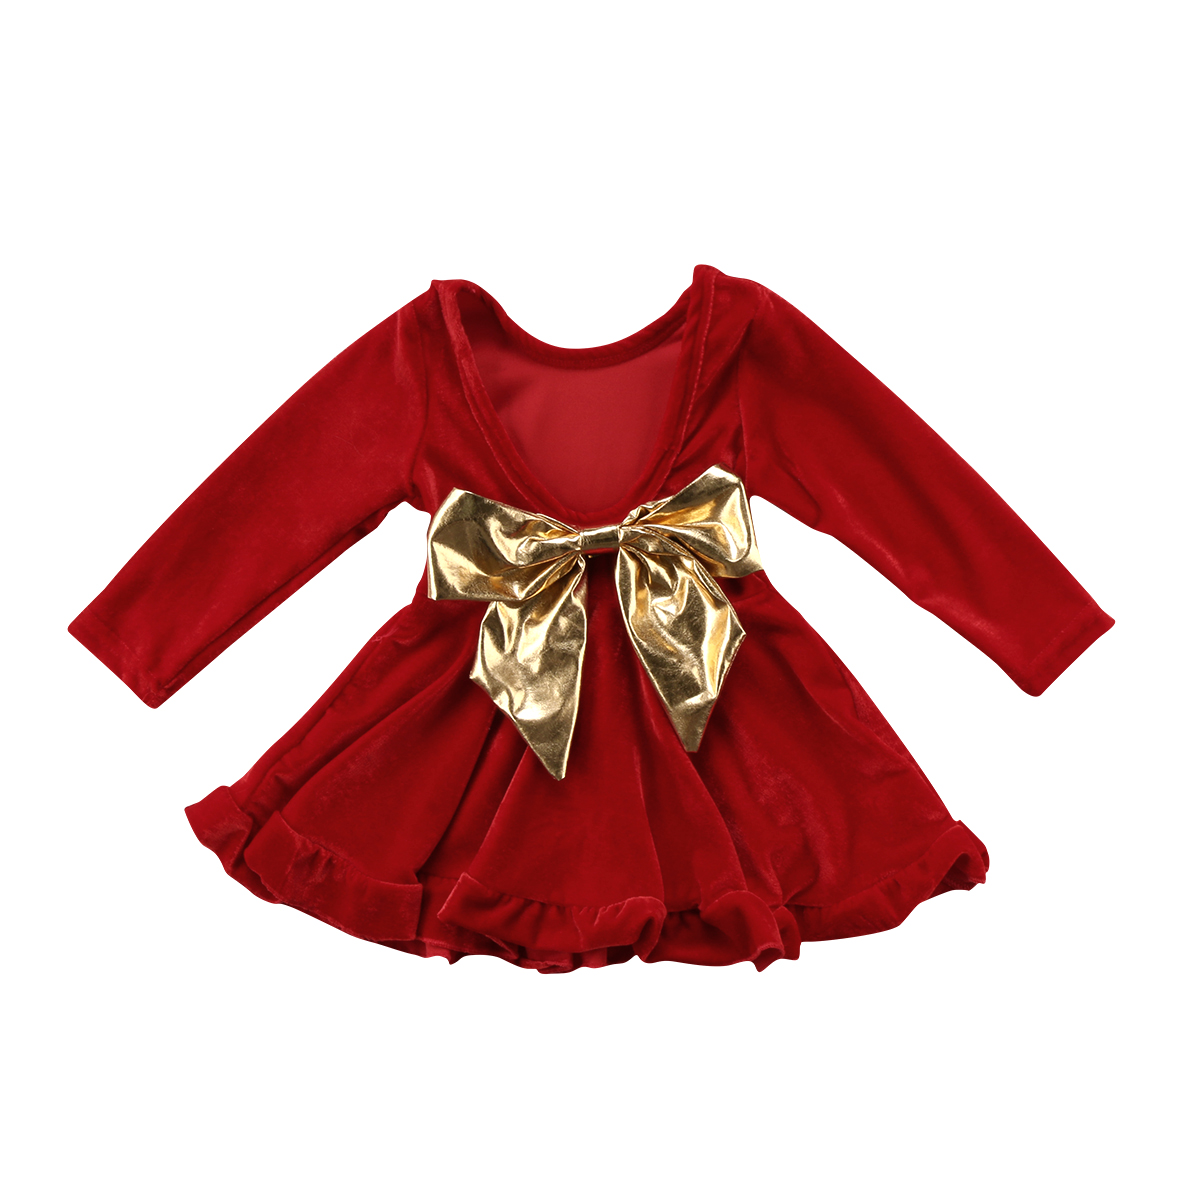 Buy girls red velvet dress and get free shipping on AliExpress.com 26b3603c5ec4